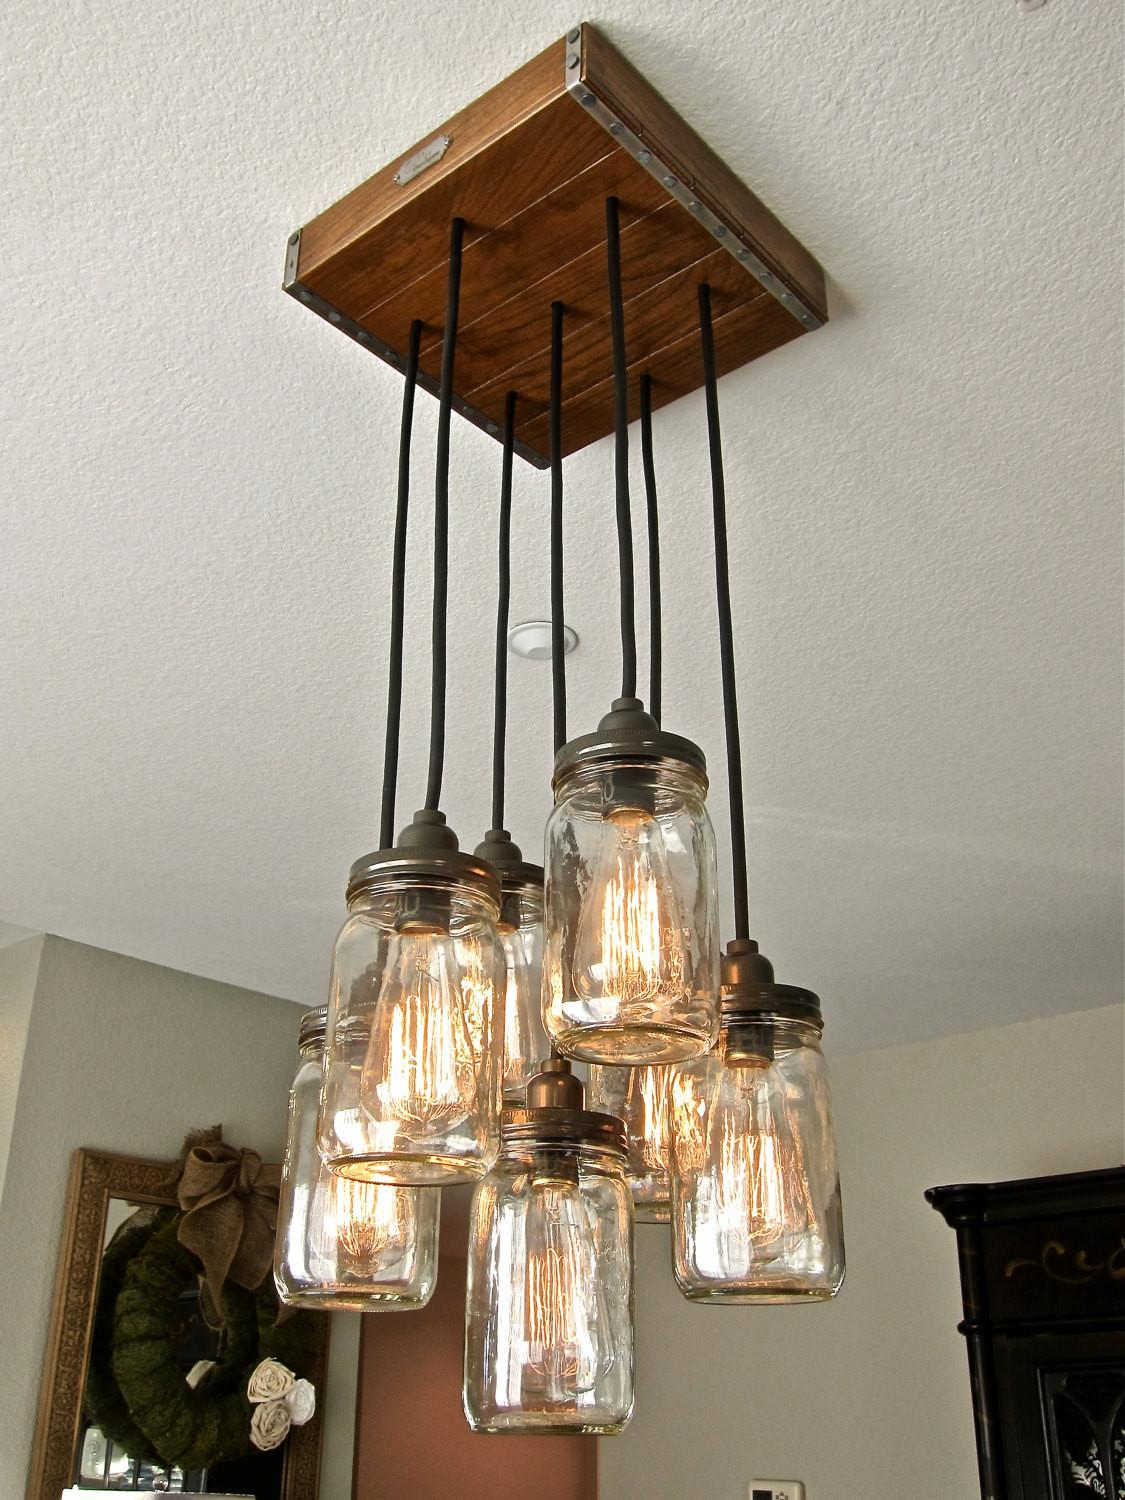 Mason Jar Pendant Light Chandelier Rustic Style Hardwood